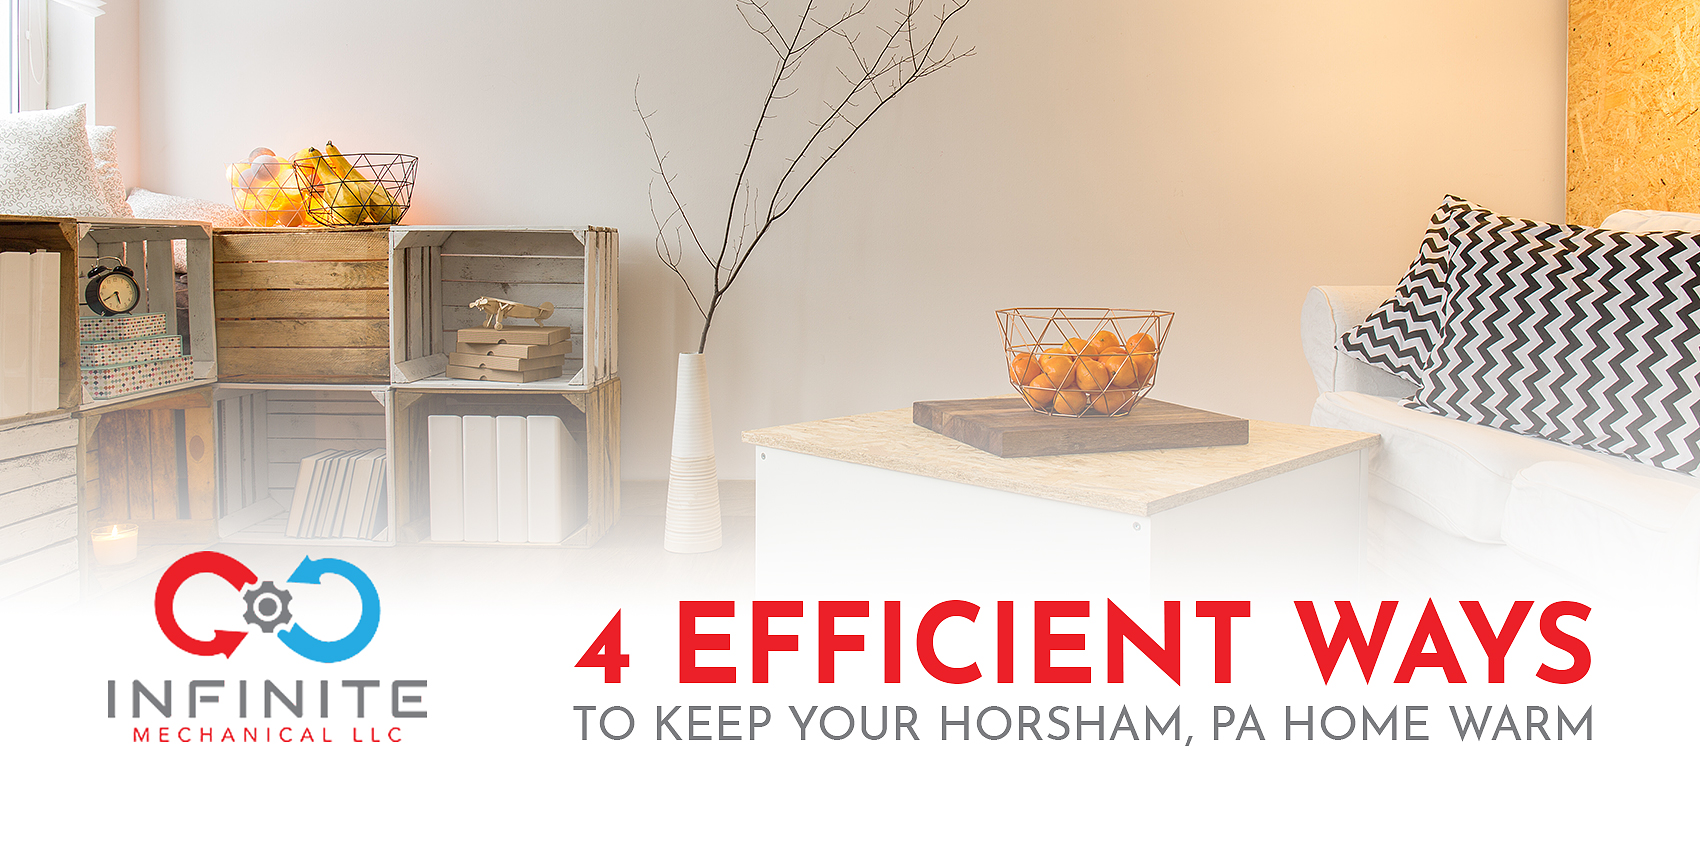 4 Efficient Ways to Keep Your Horsham, PA Home Warm